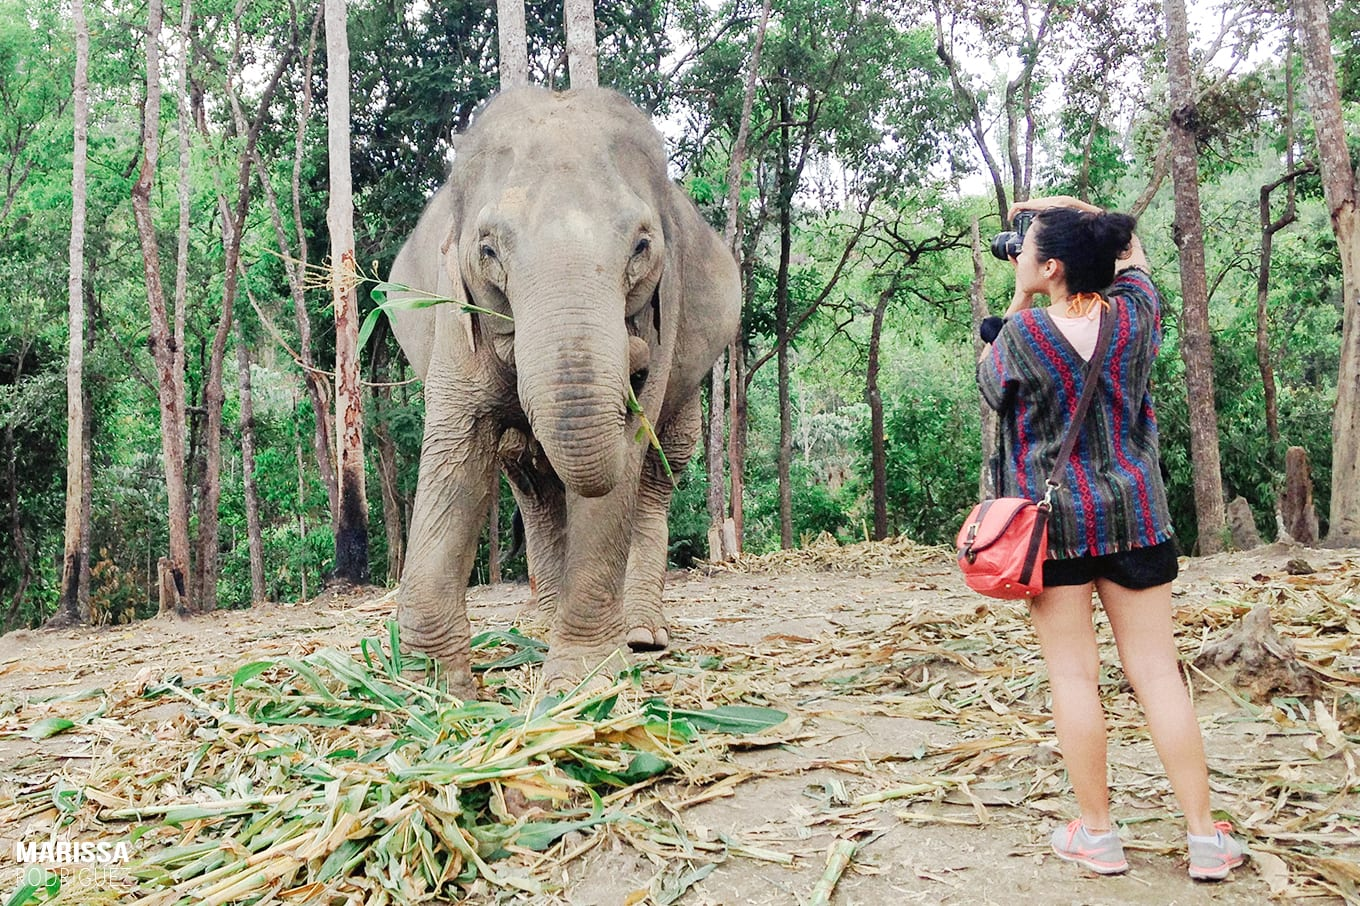 photographing elephants_dream come true_ thailand_animal sanctuary